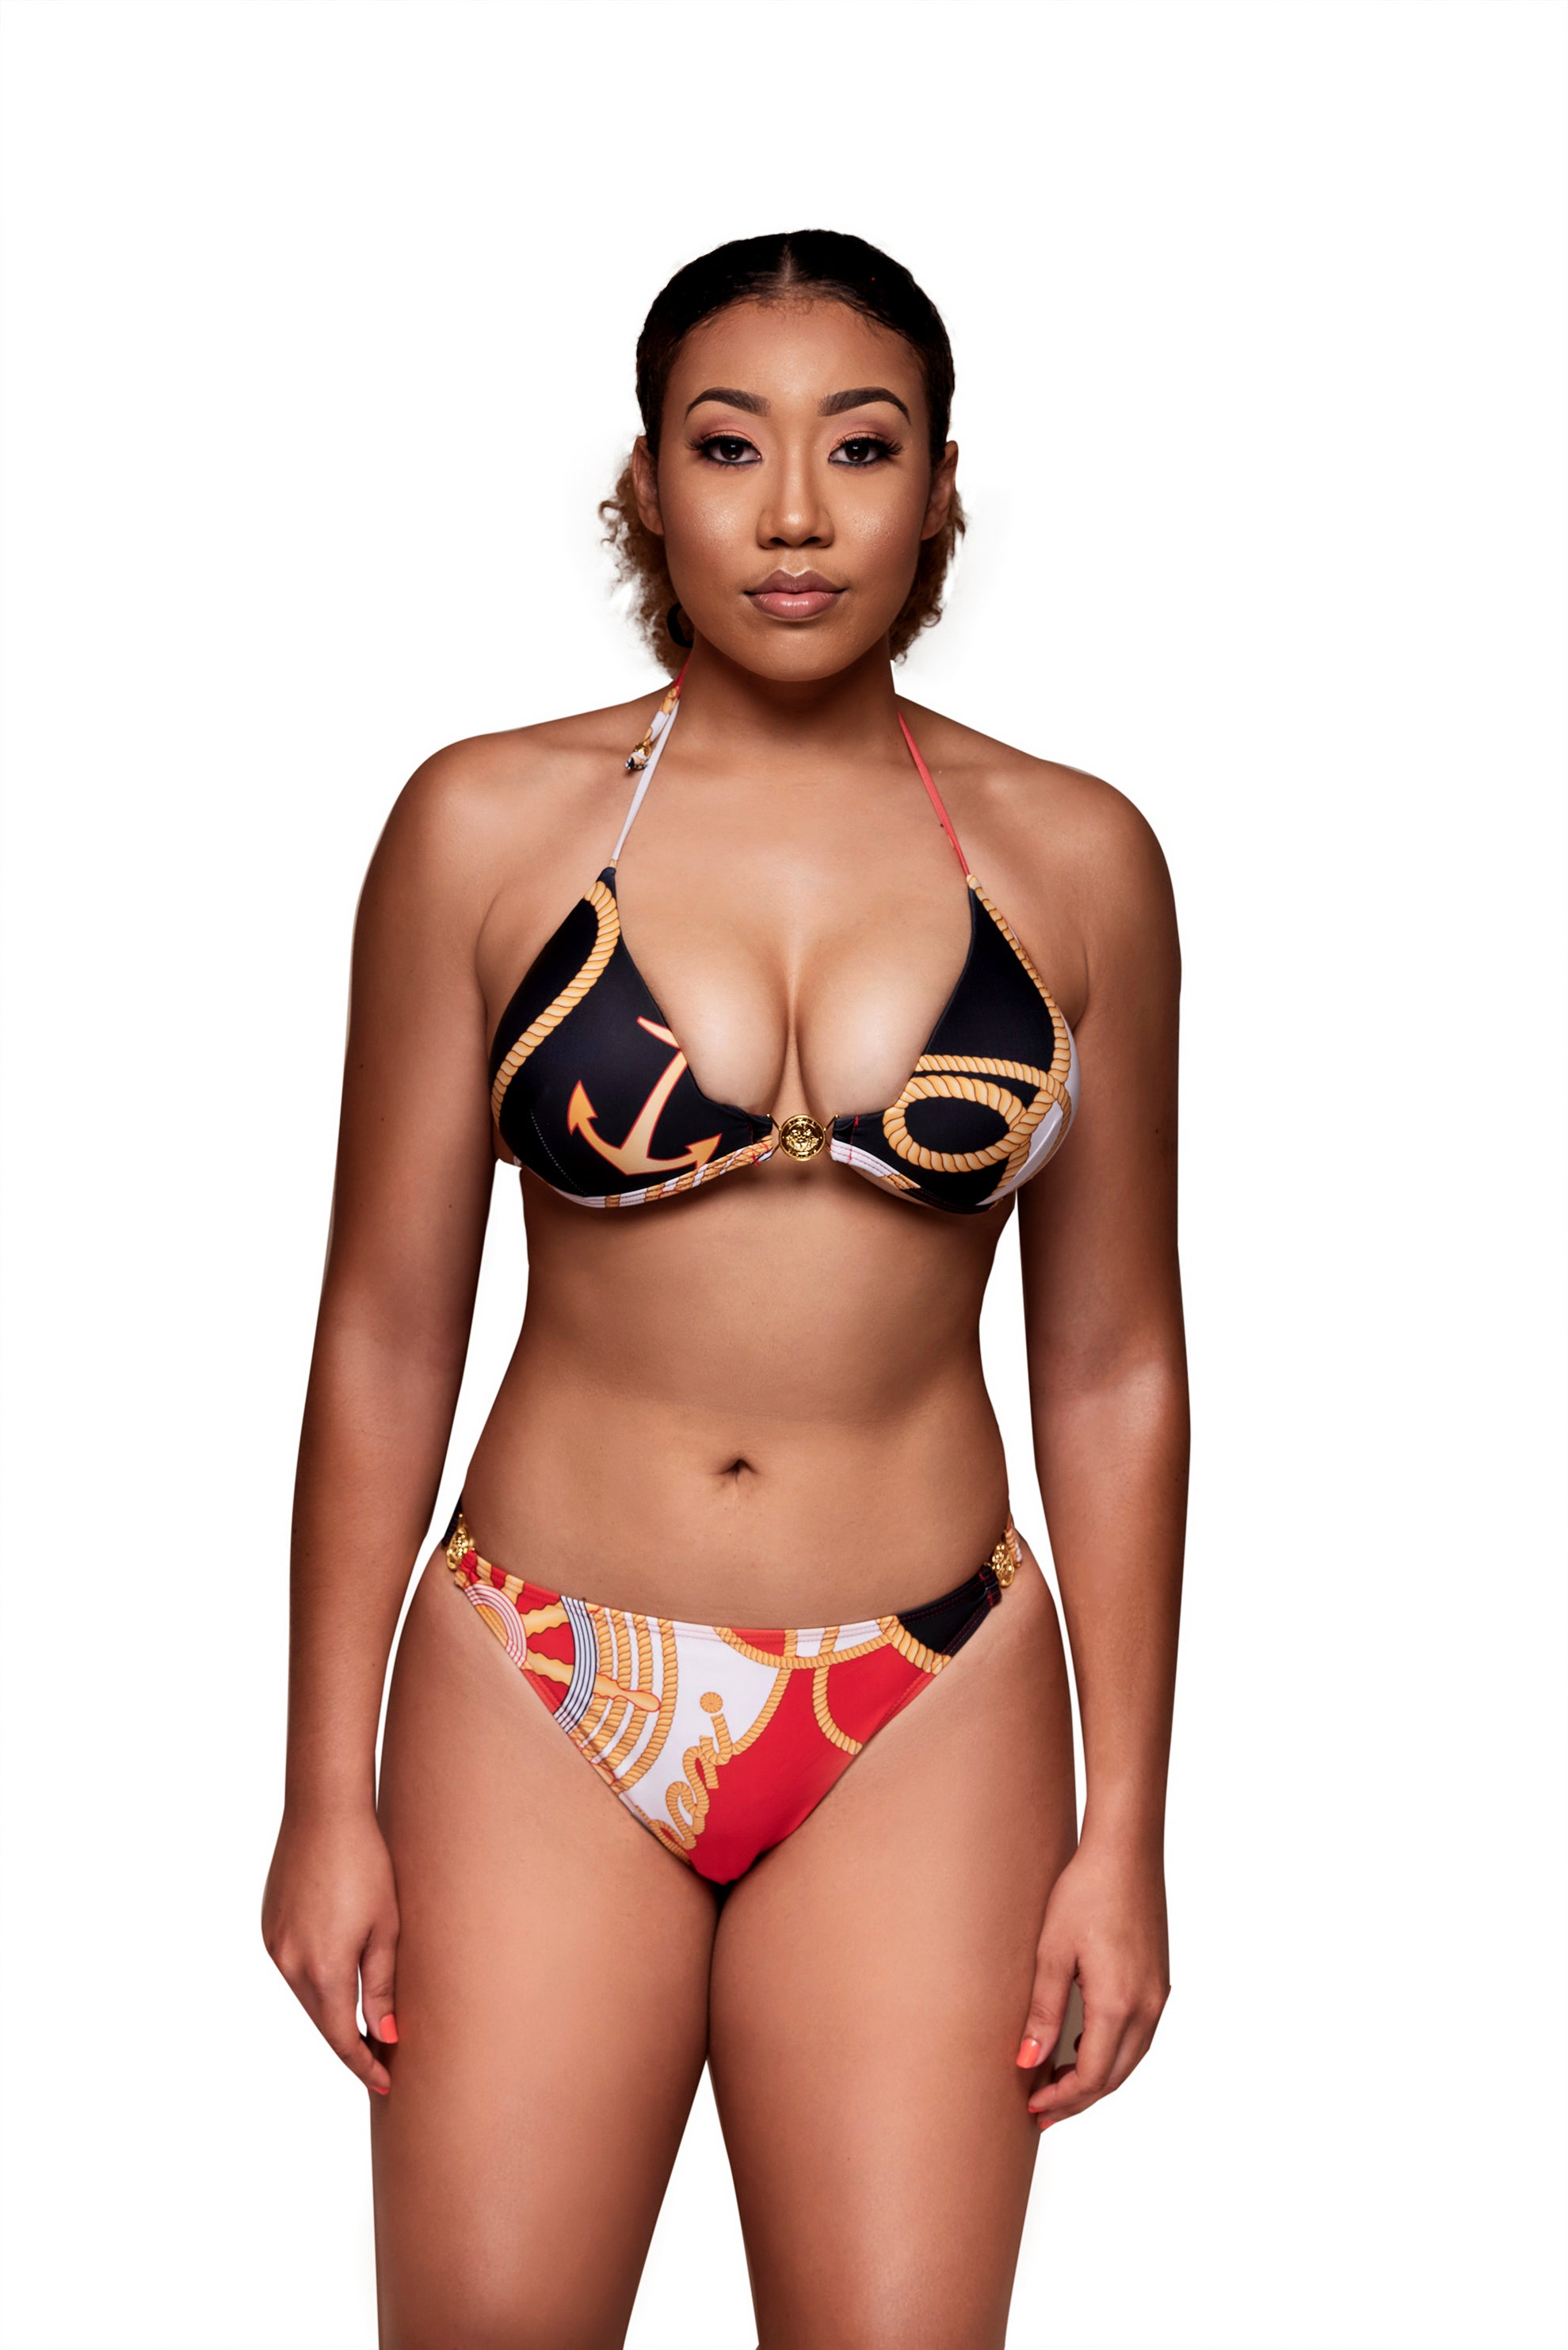 The Marina Medallion Bikini